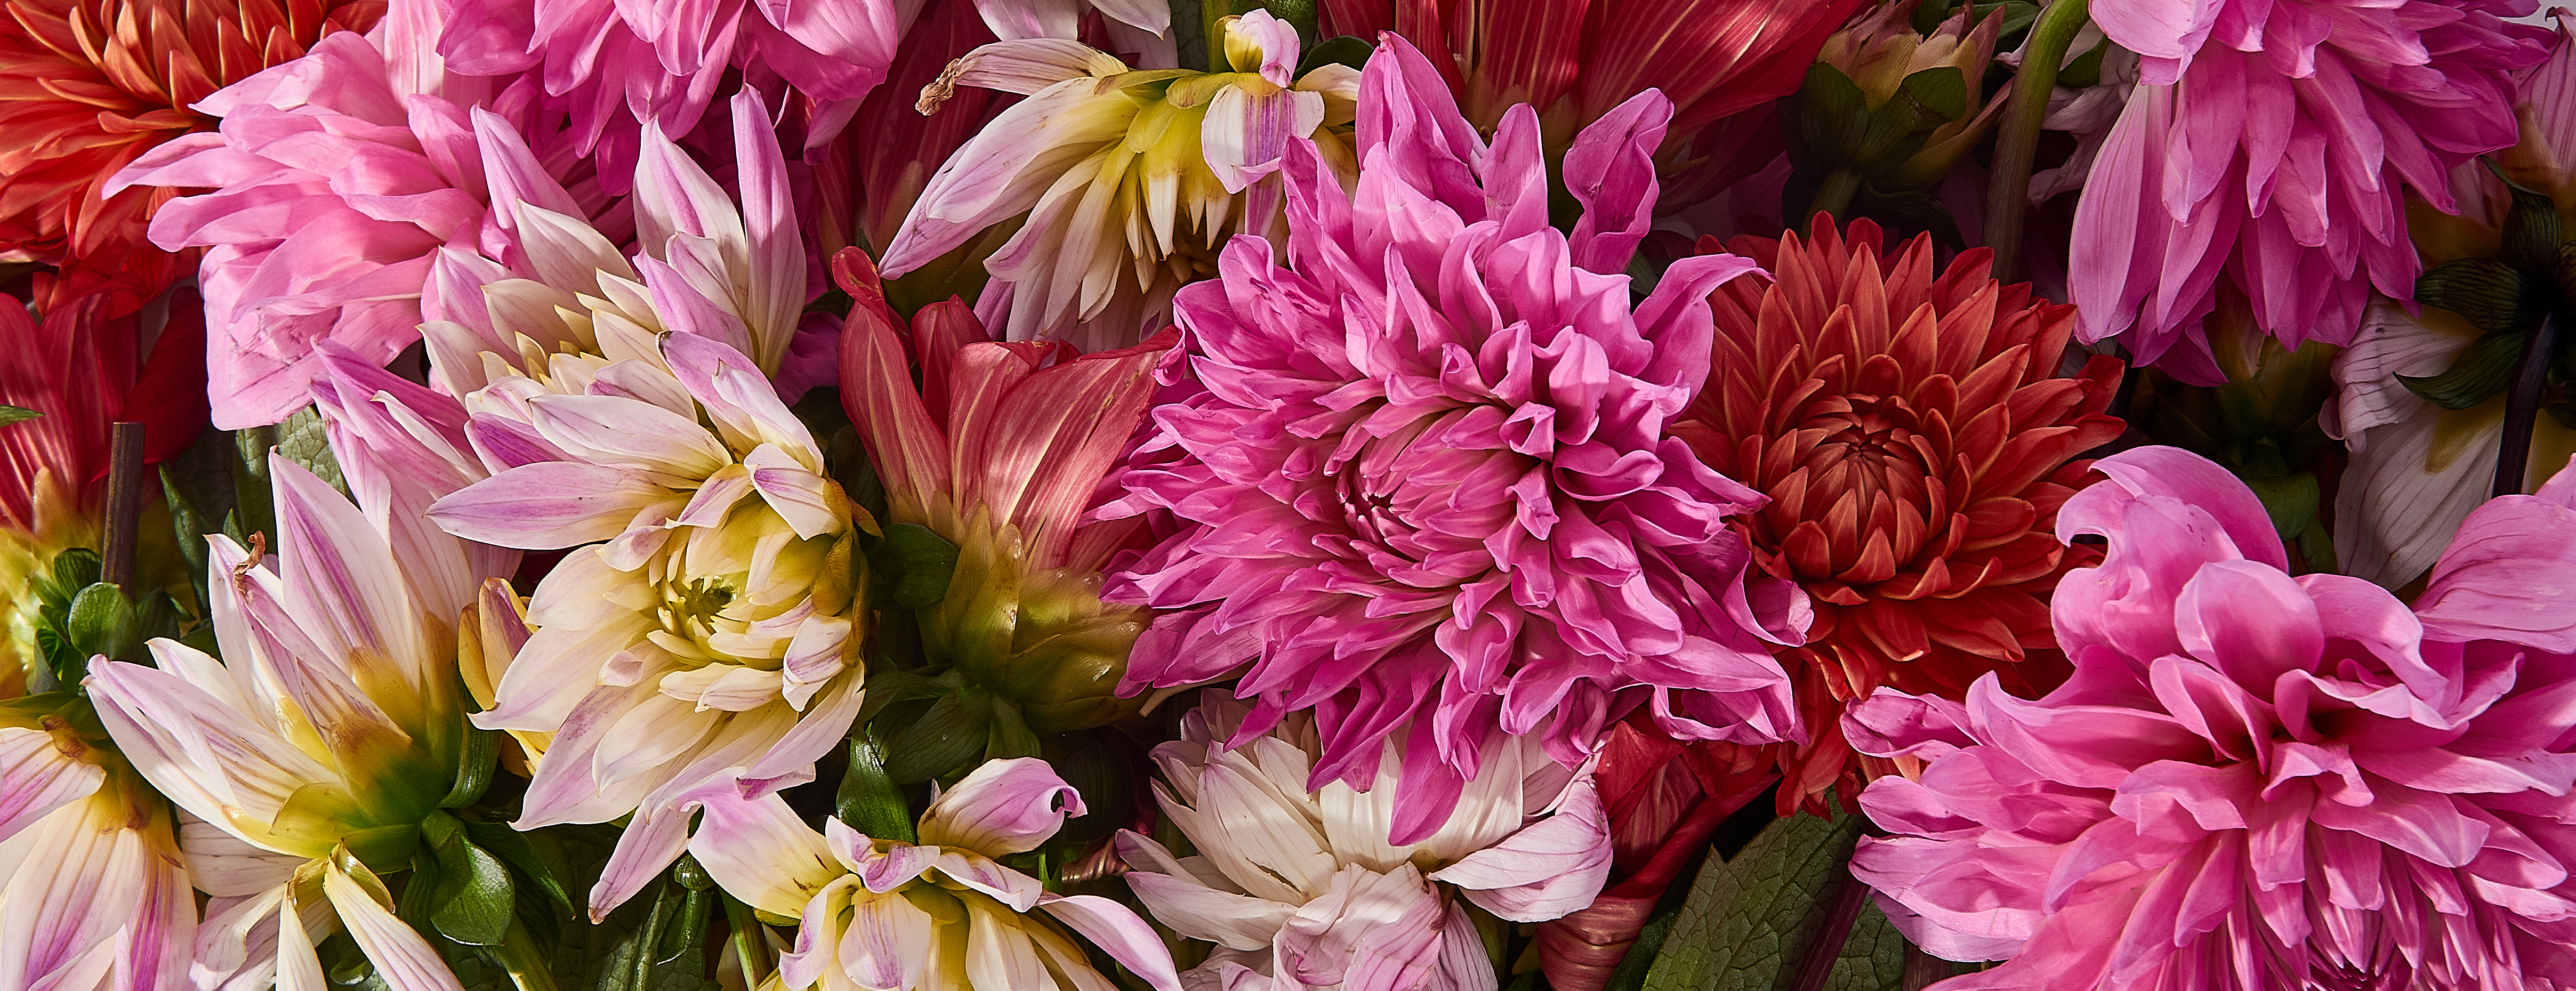 Multicolored dahlias in shades of pink and red